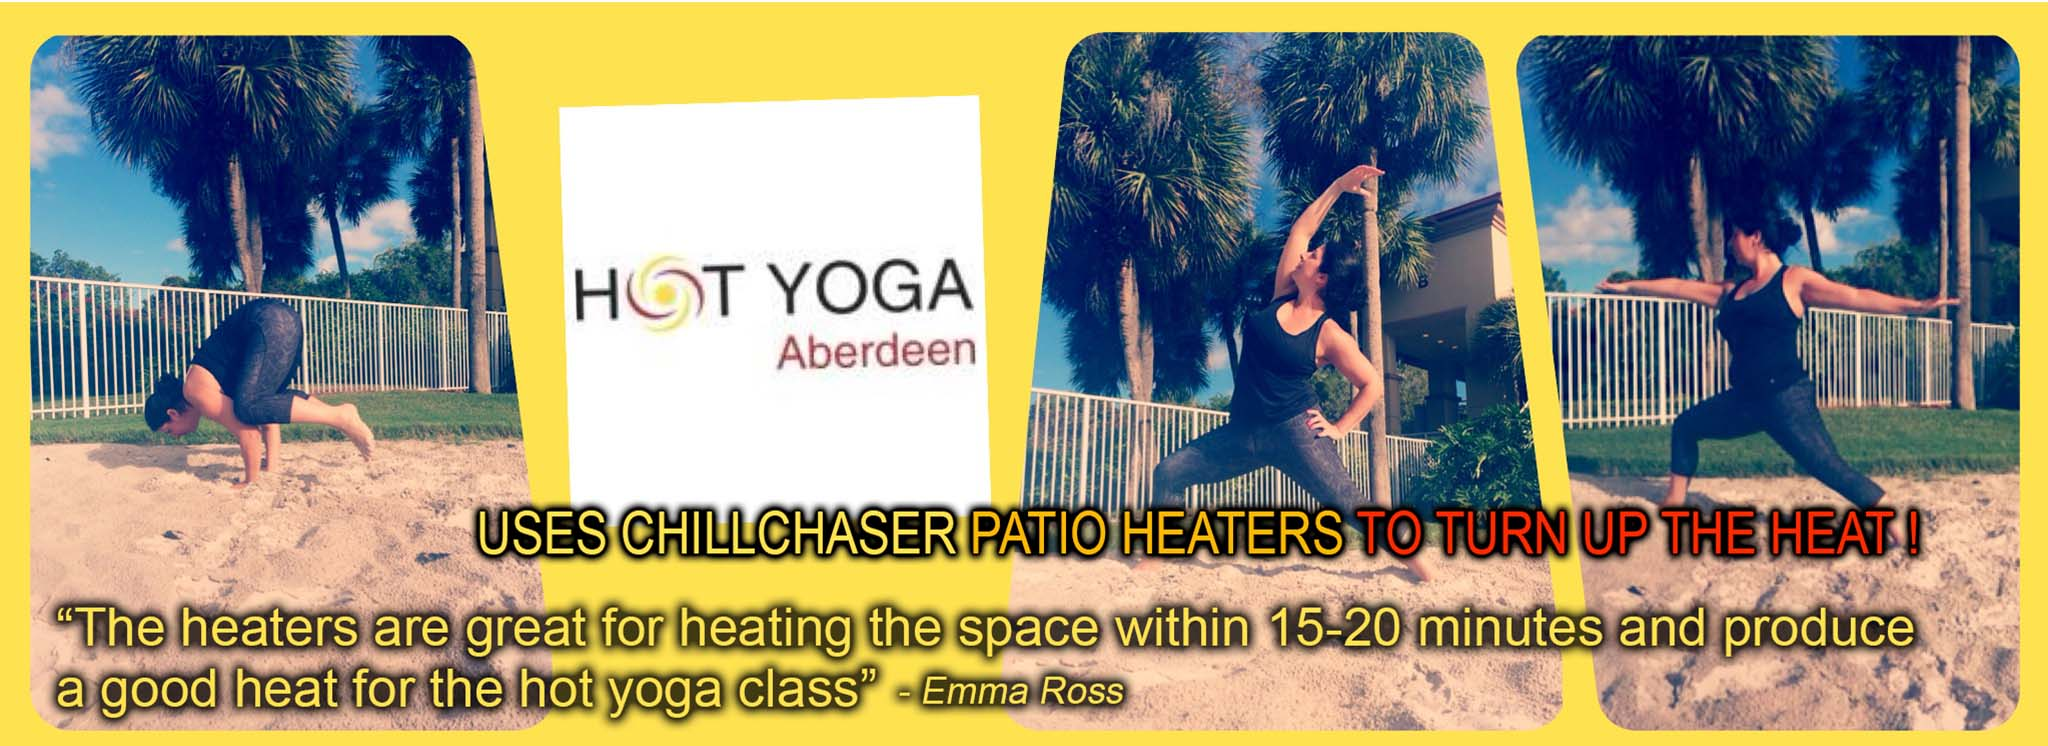 Hot Yoga Aberdeen